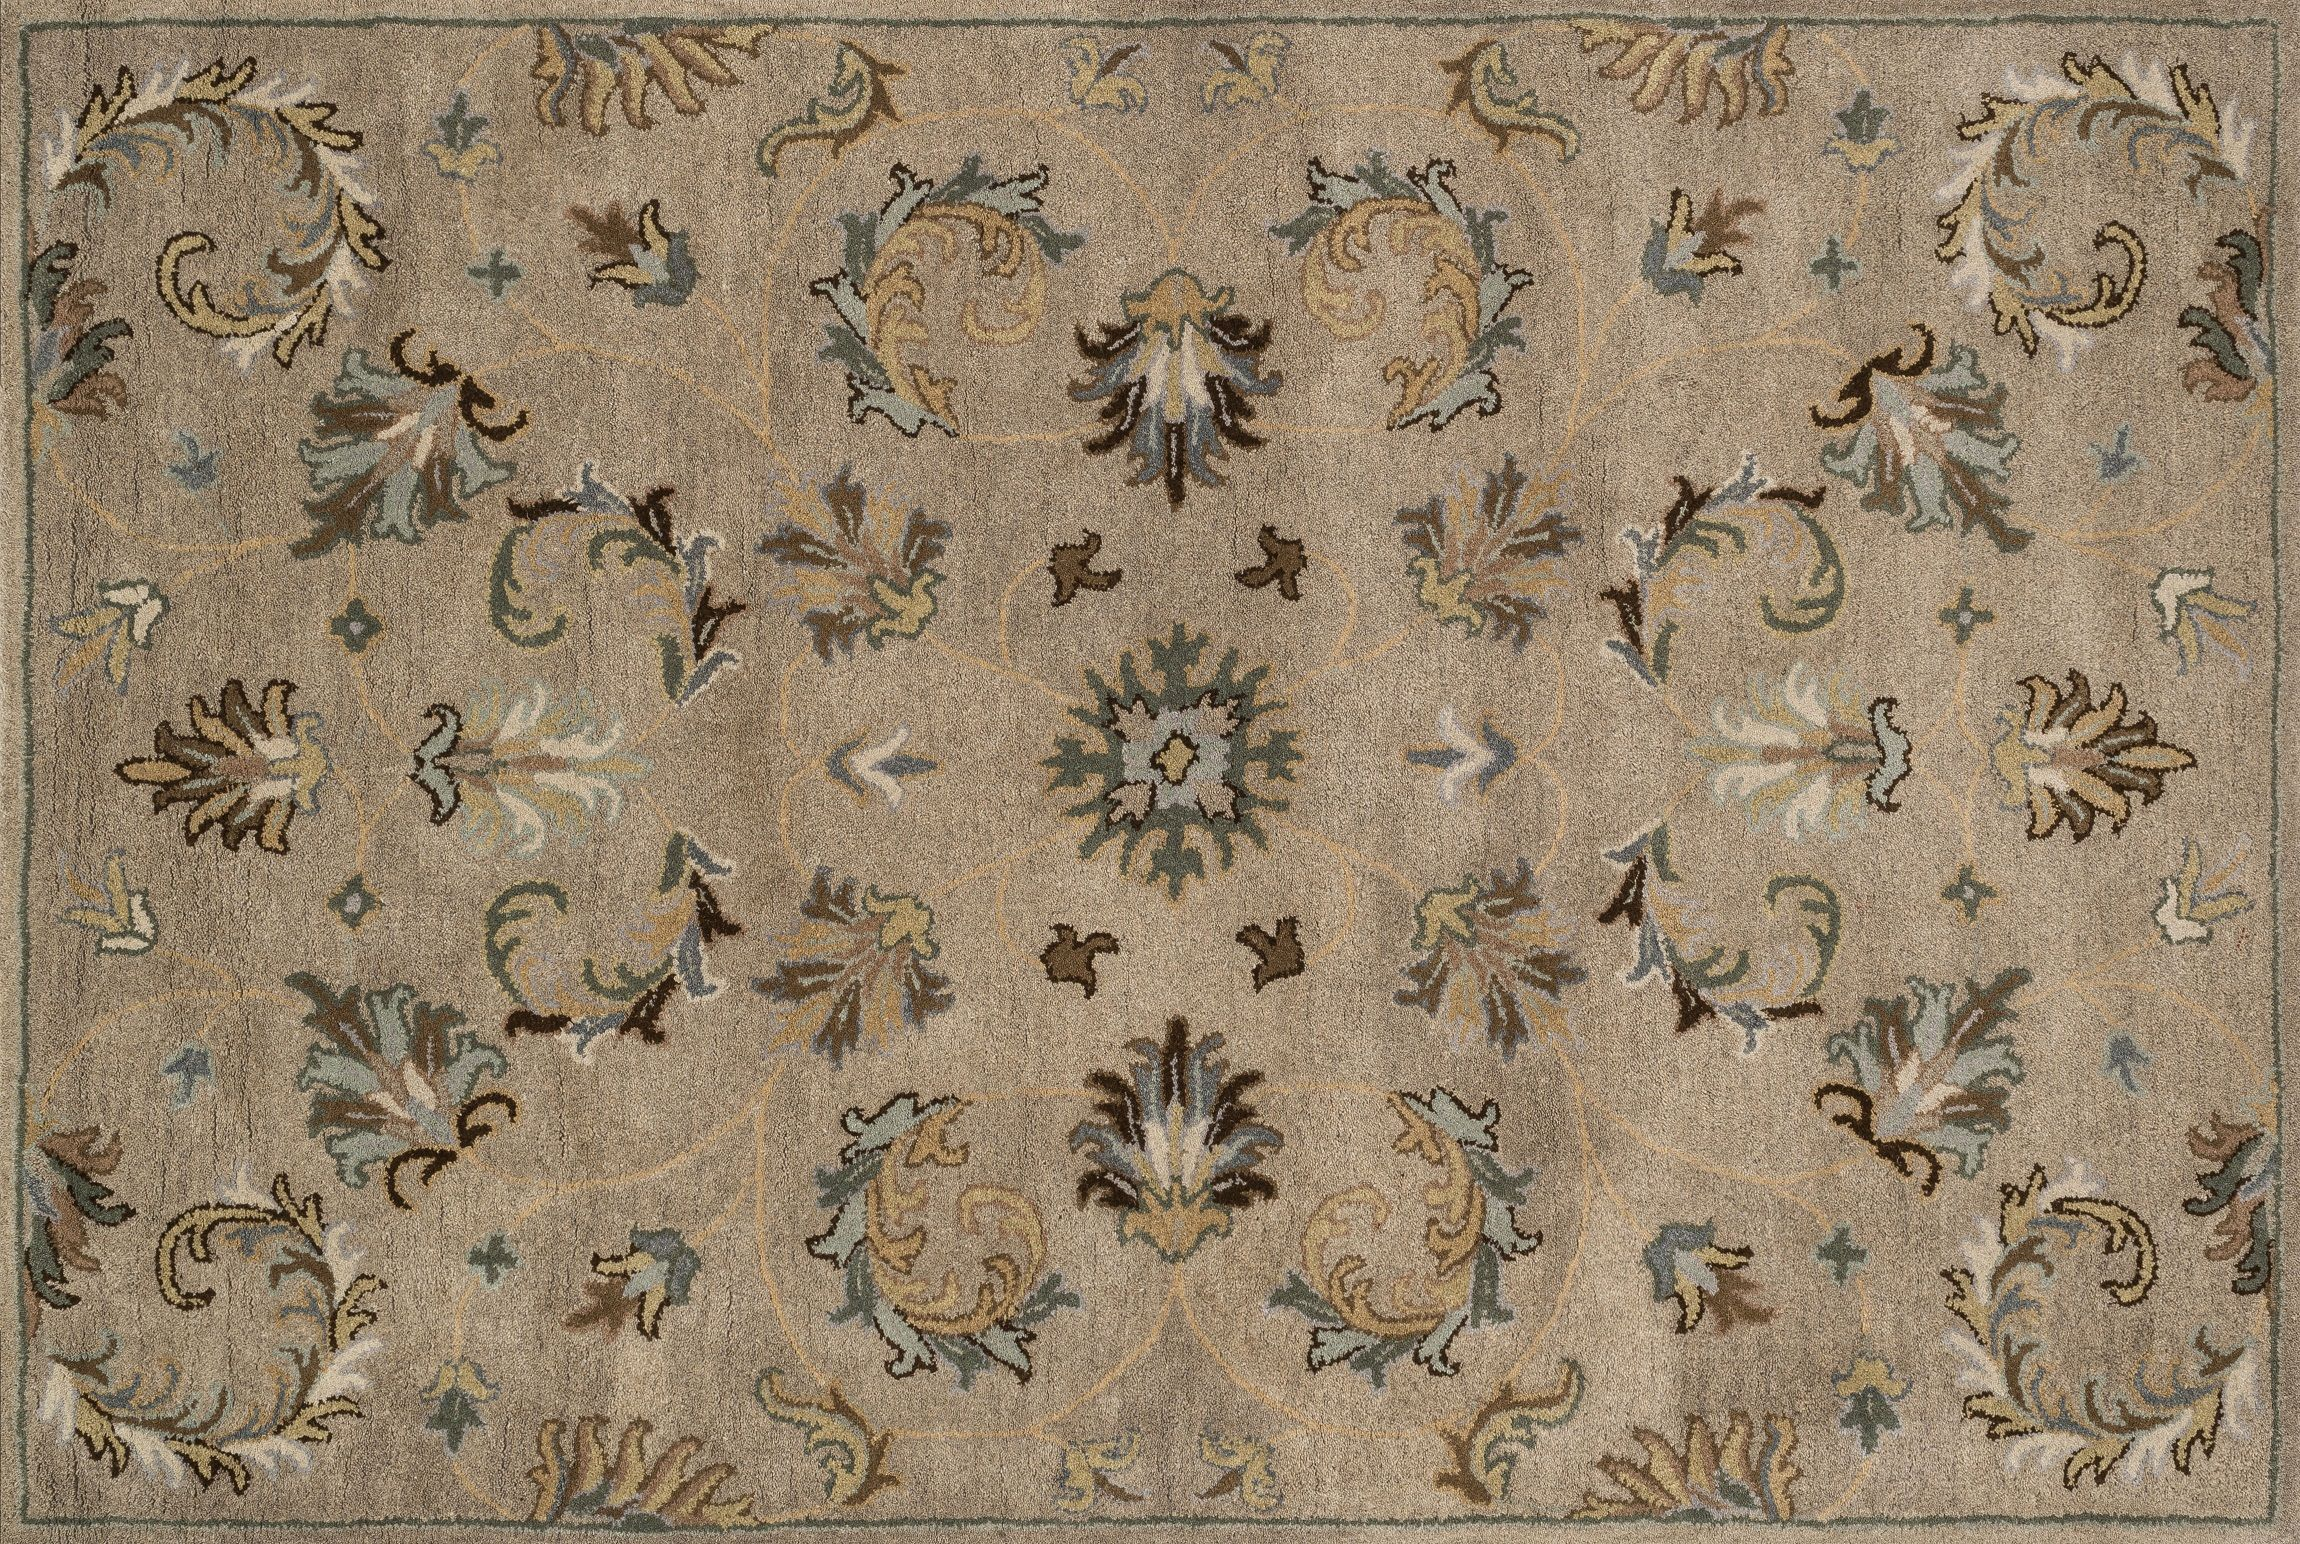 recaro north Loloi Rugs Fairfield Collection Traditional Area Rug 5-feet by 7- feet 6- Inch,